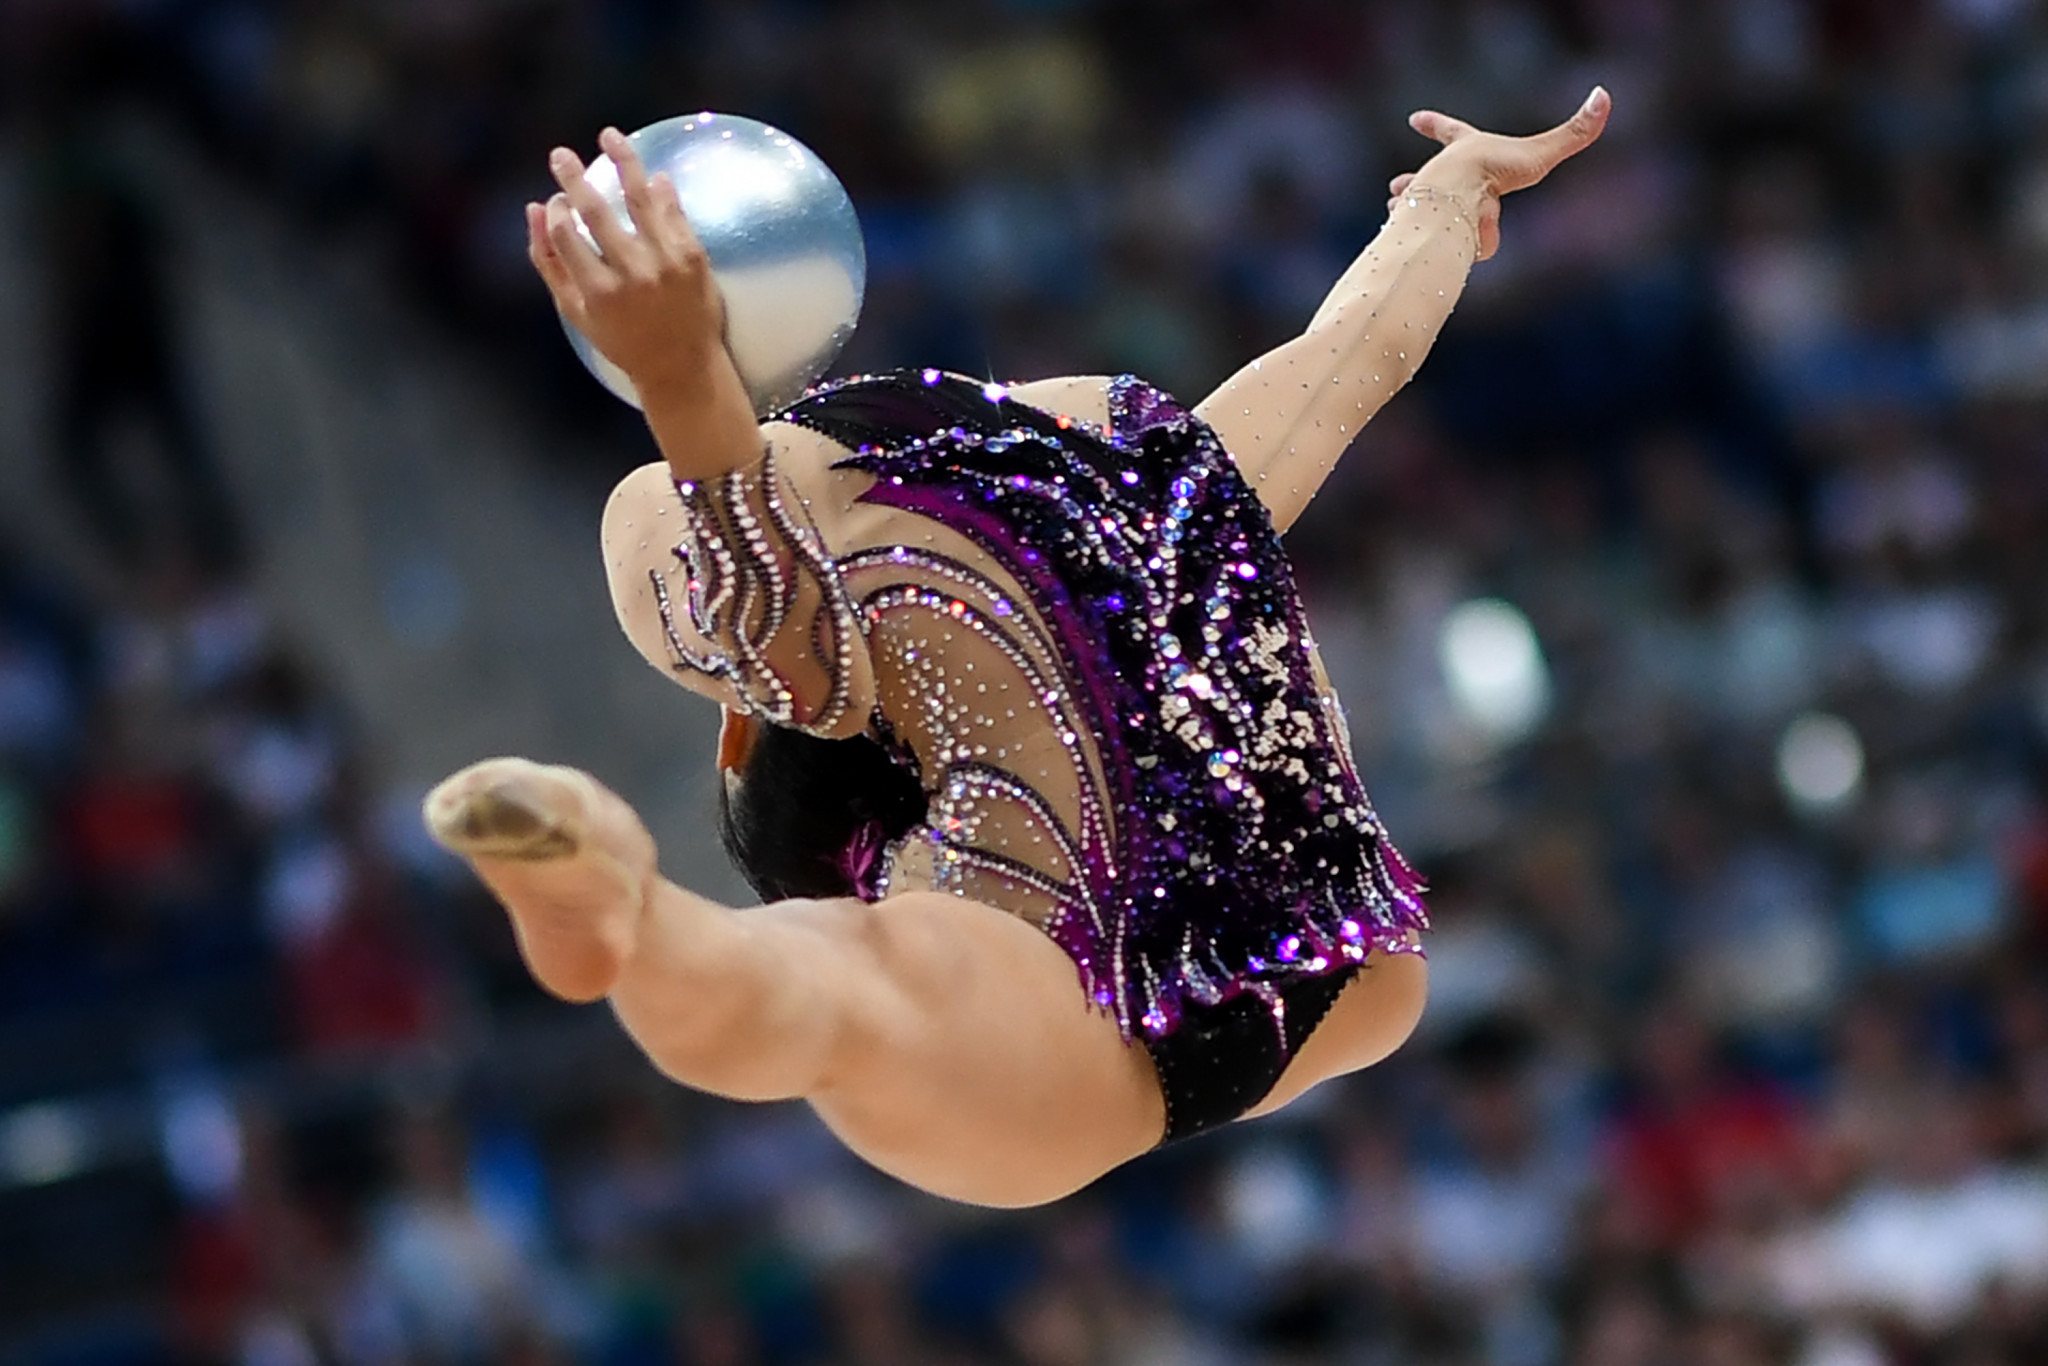 Israel's Linoy Ashram was the victor in the rhythmic gymnastics ball and clubs ©Getty Images